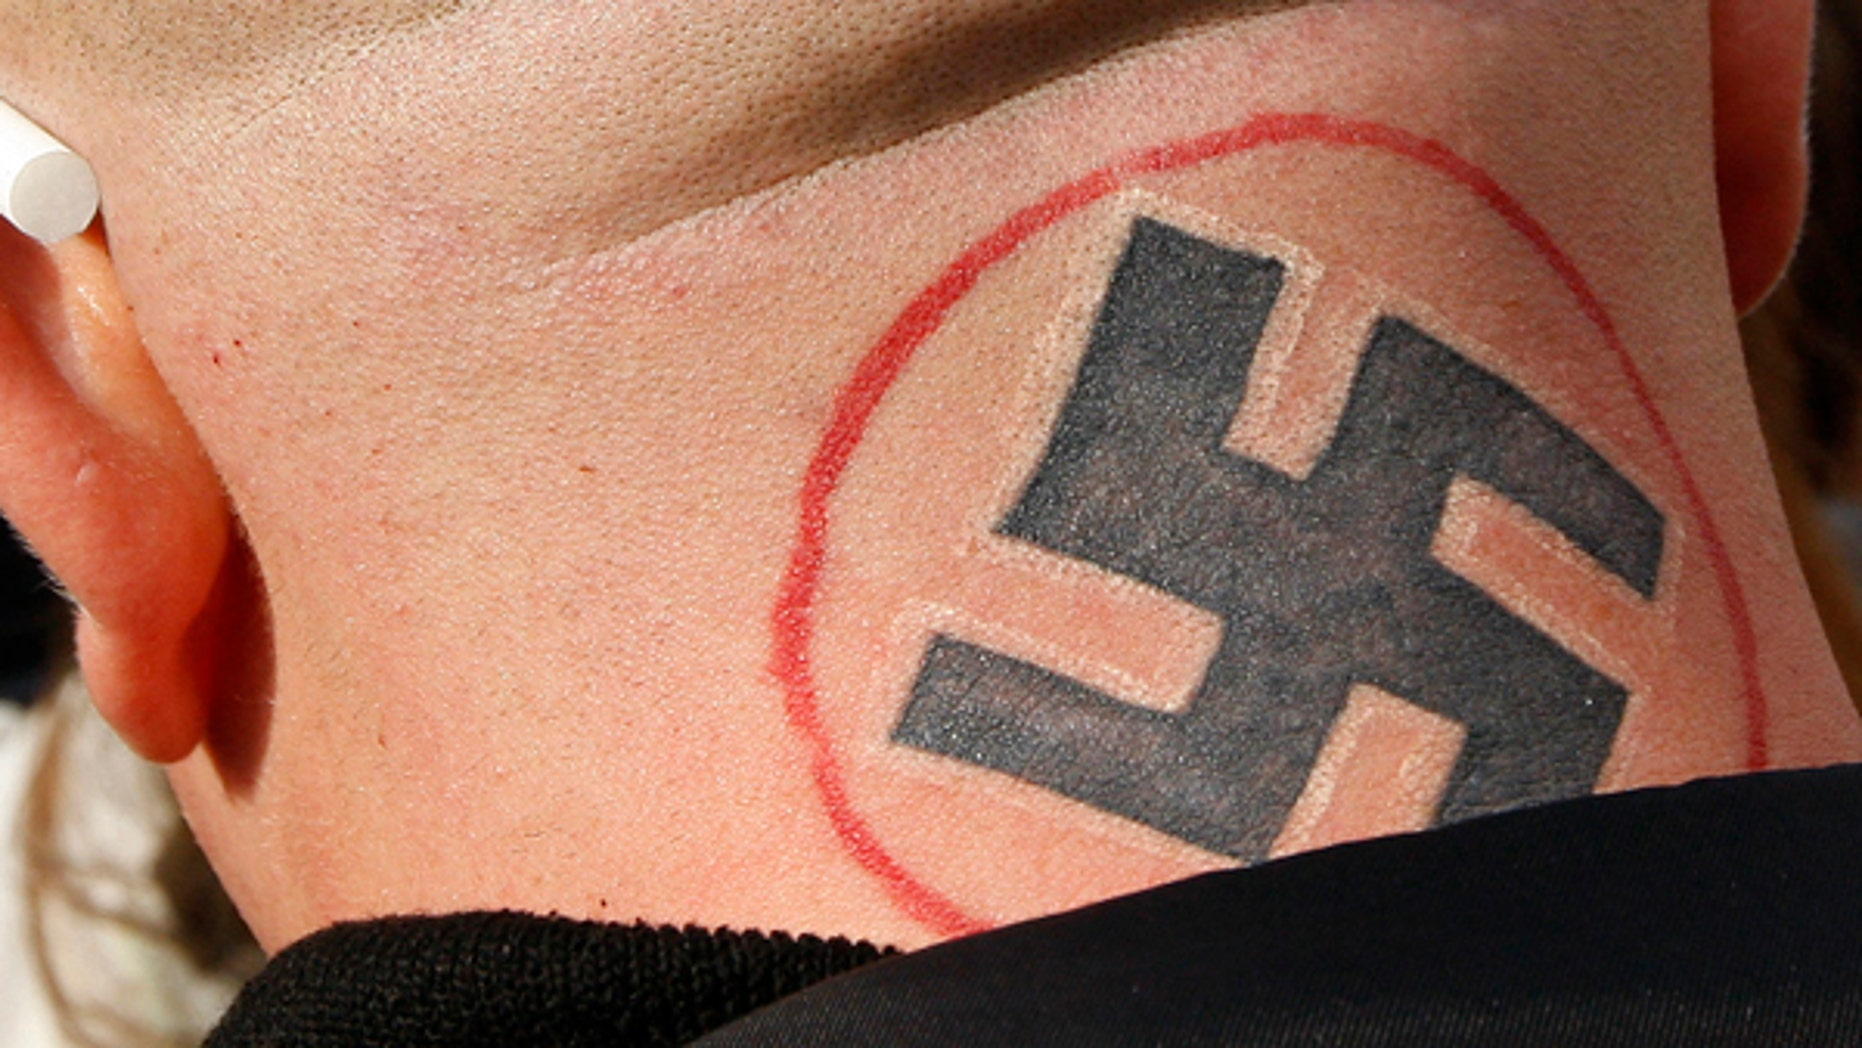 A swastika is seen on a man's neck.